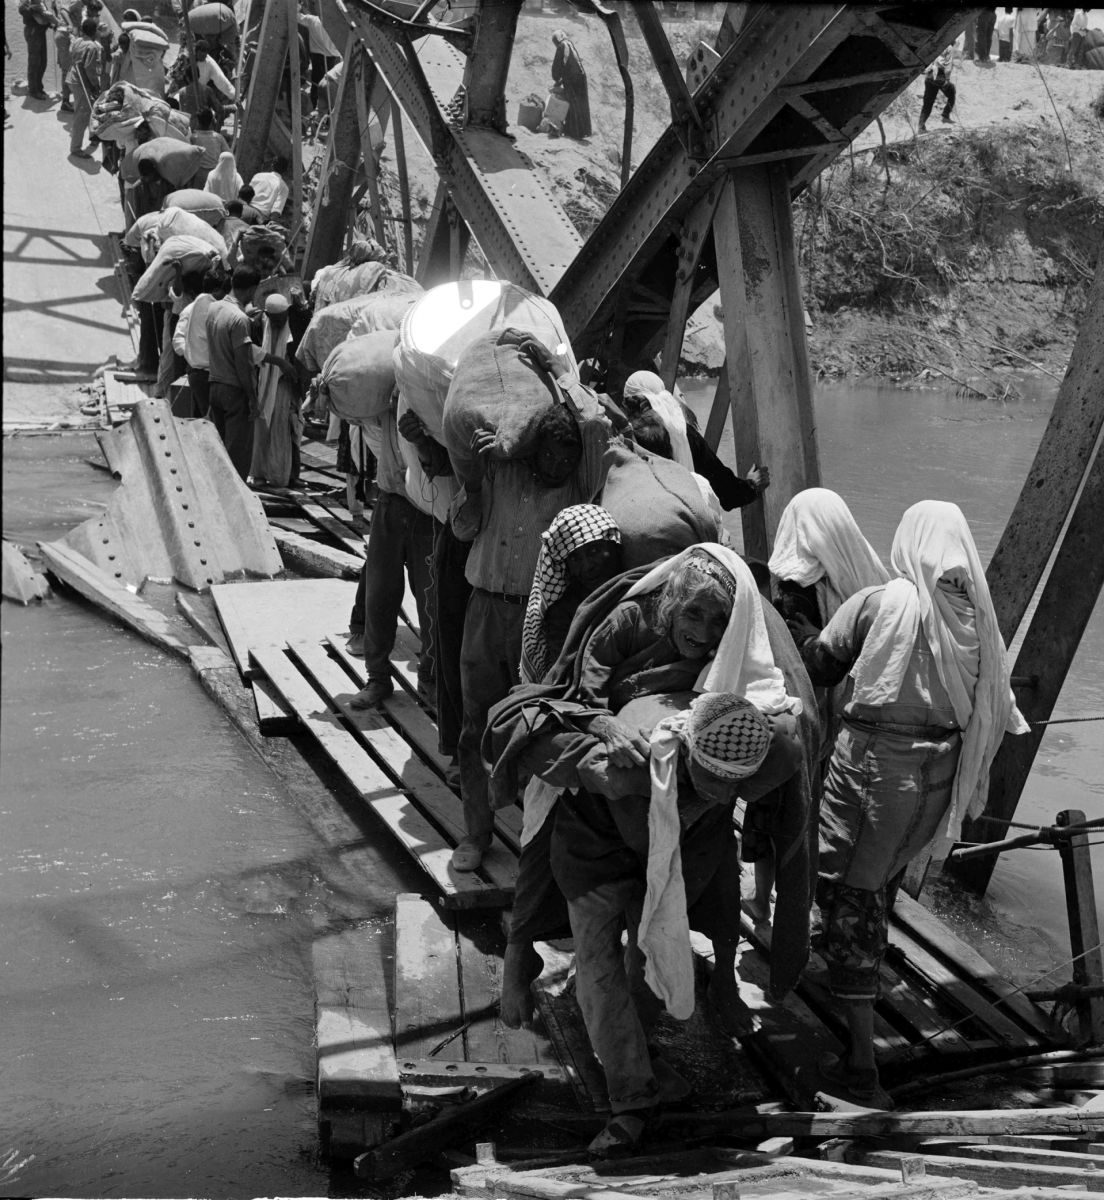 Palestine Refugees Flee Across Over The Jordan River On The Damaged Allenby Bridge During The Six Day War 1967 Ap